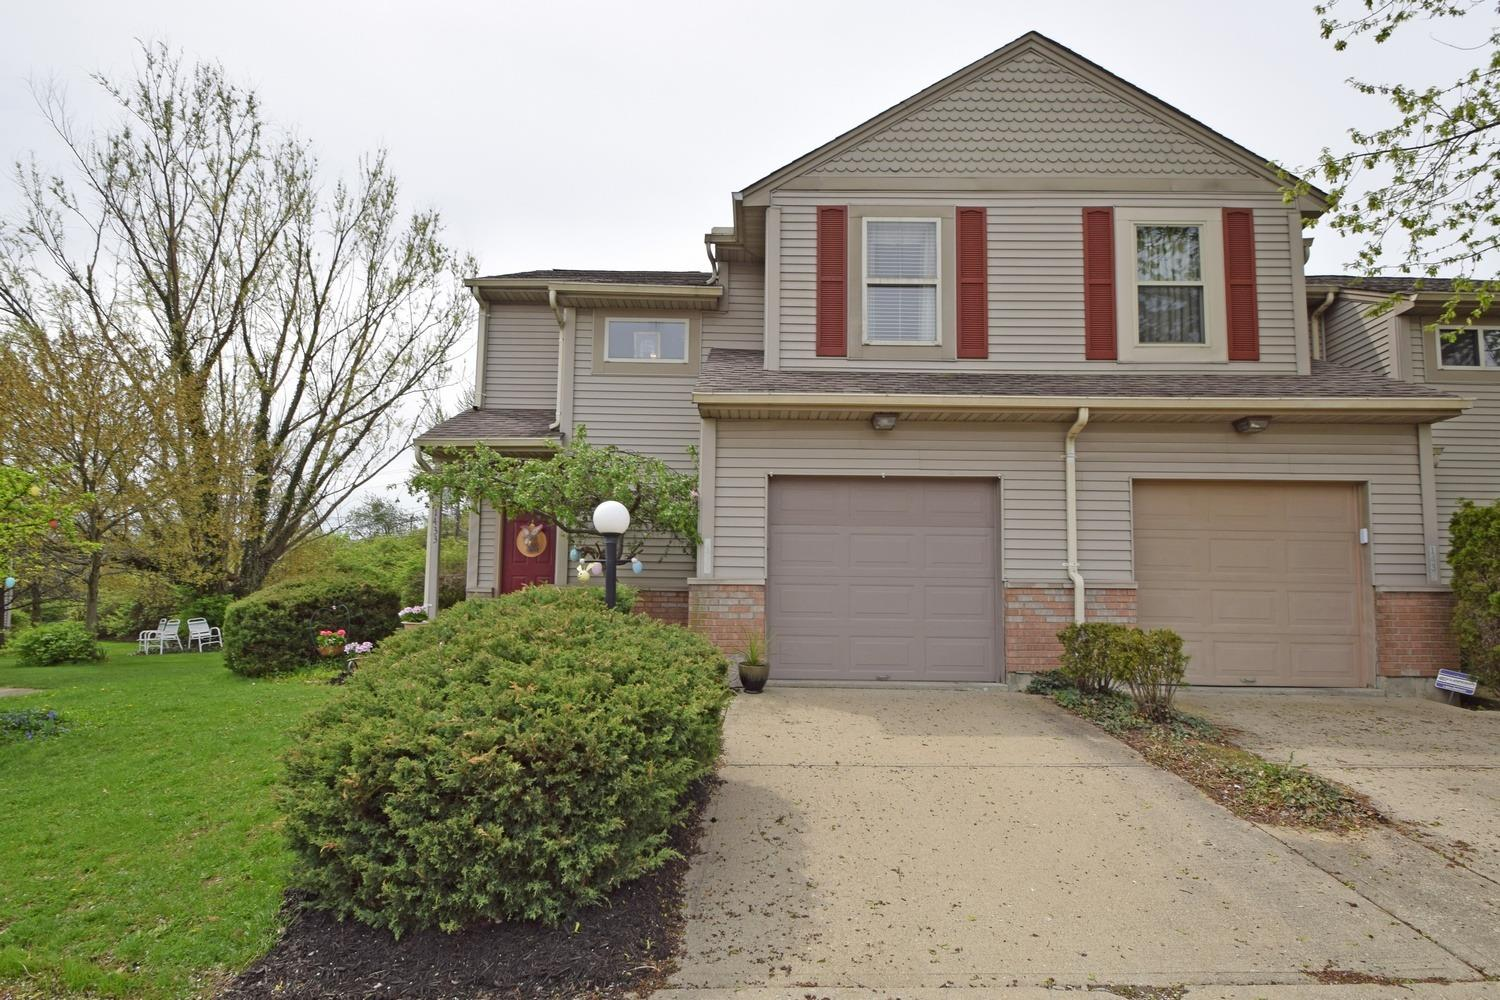 Photo 2 for 1433 W Kemper Rd, 10 Forest Park, OH 45240